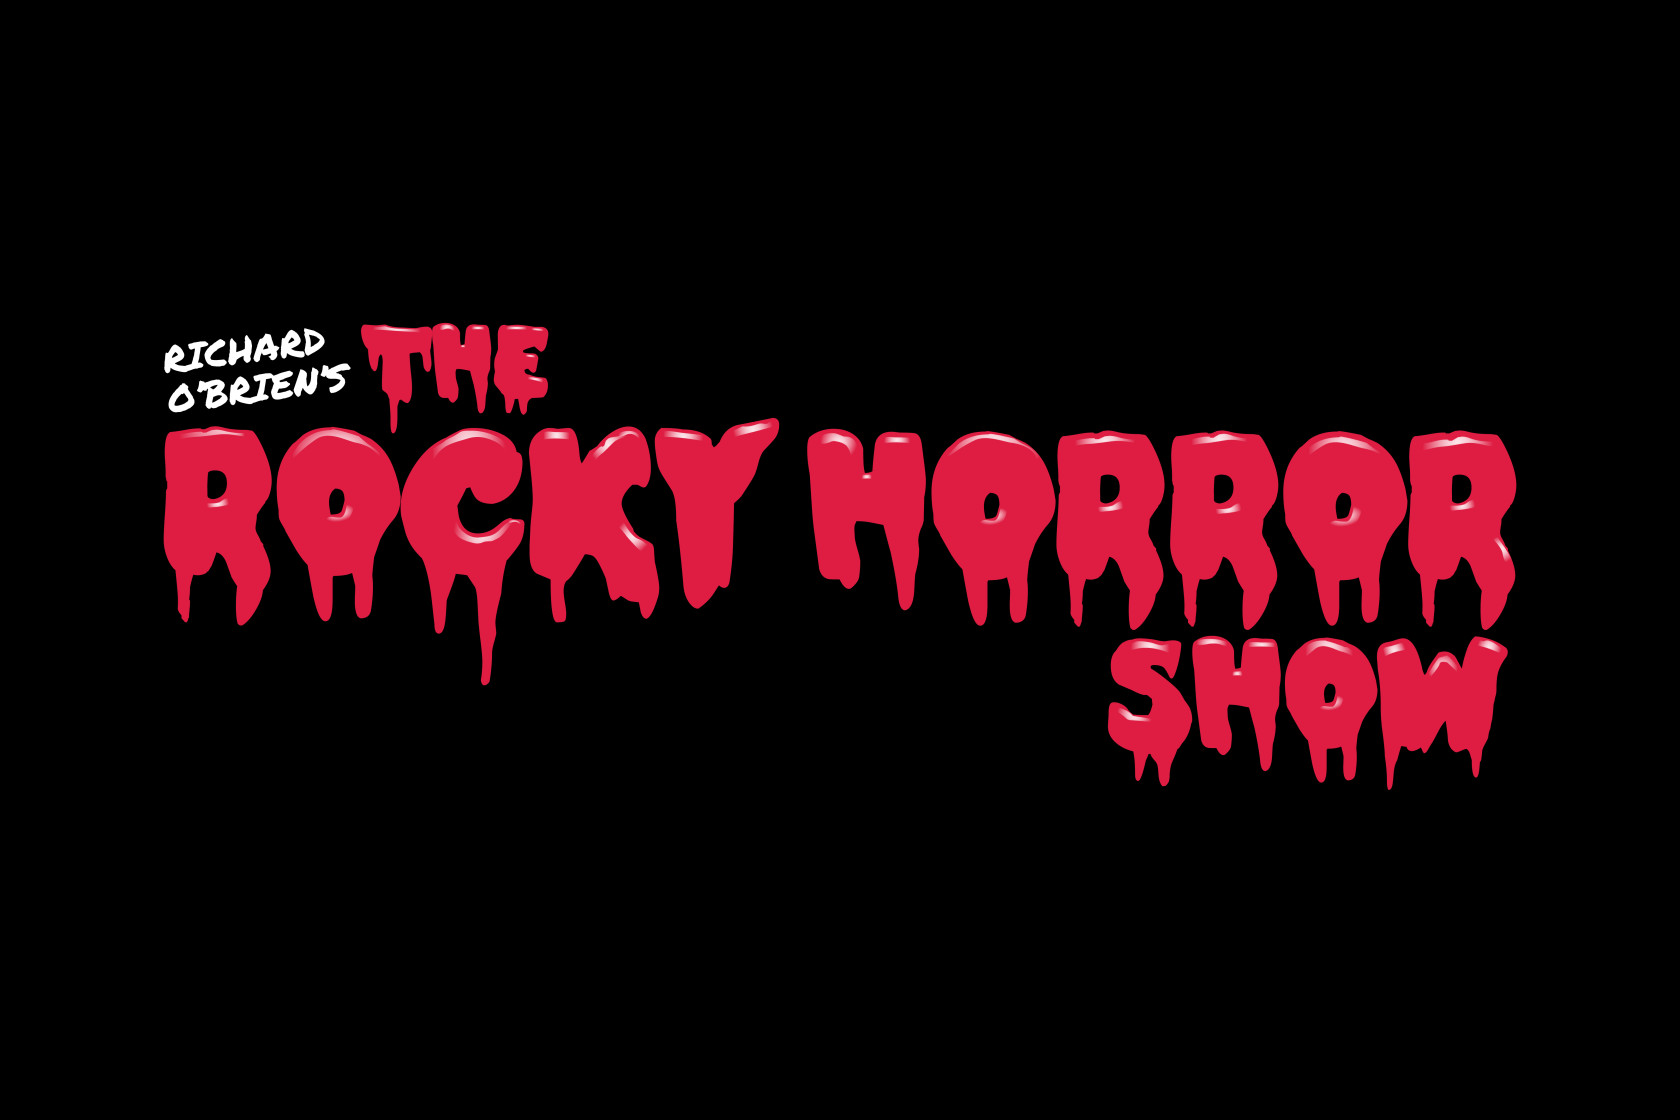 Rocky-Horror-Website-image-01-1680x1120.